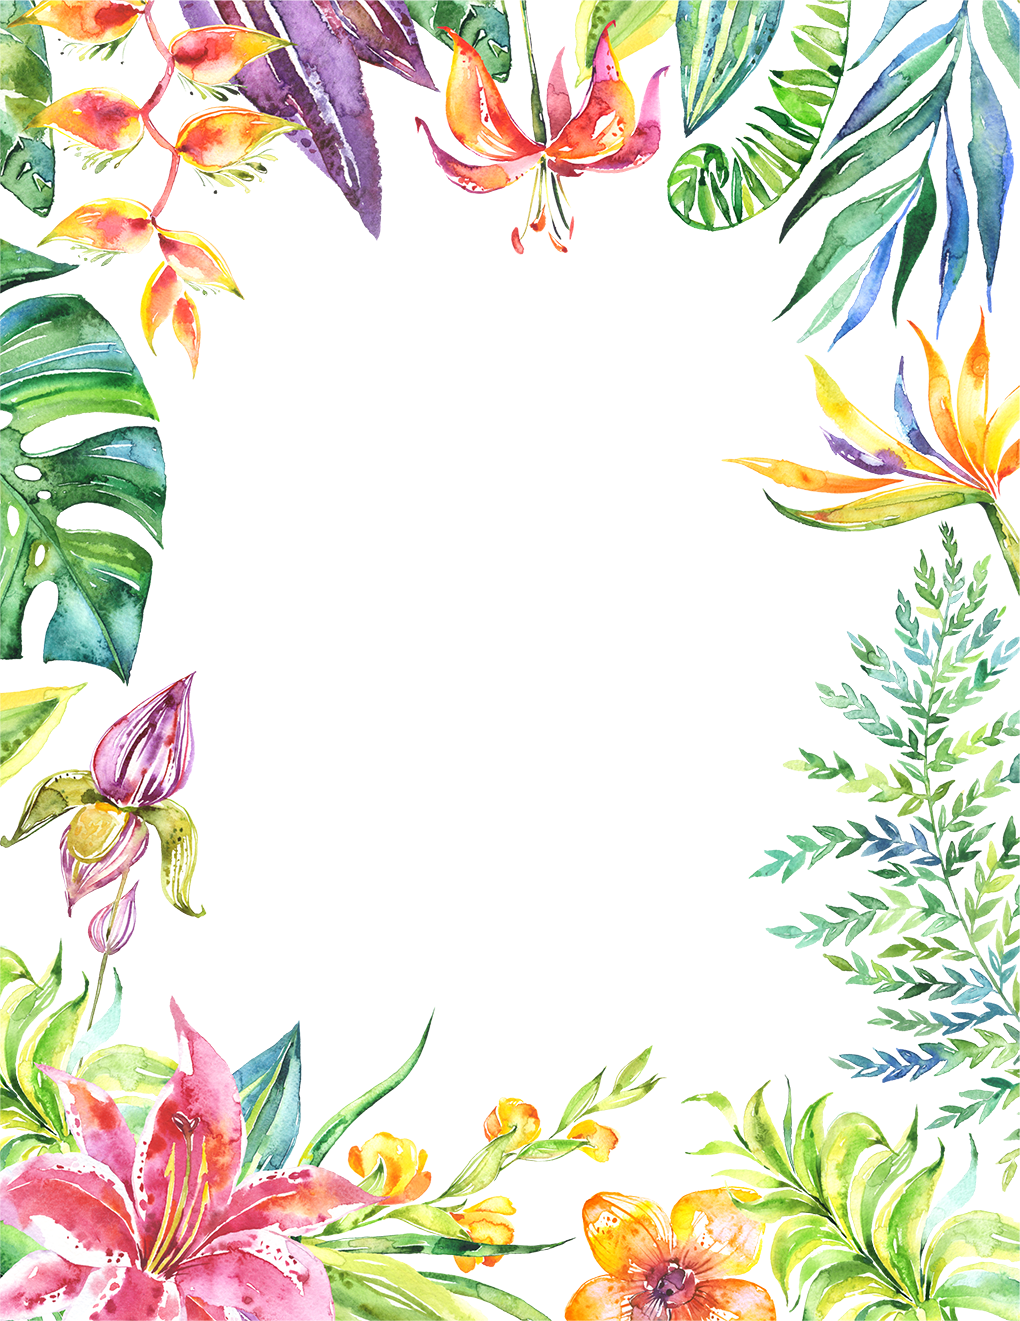 Tropical border png. Leaves flowers plants frame